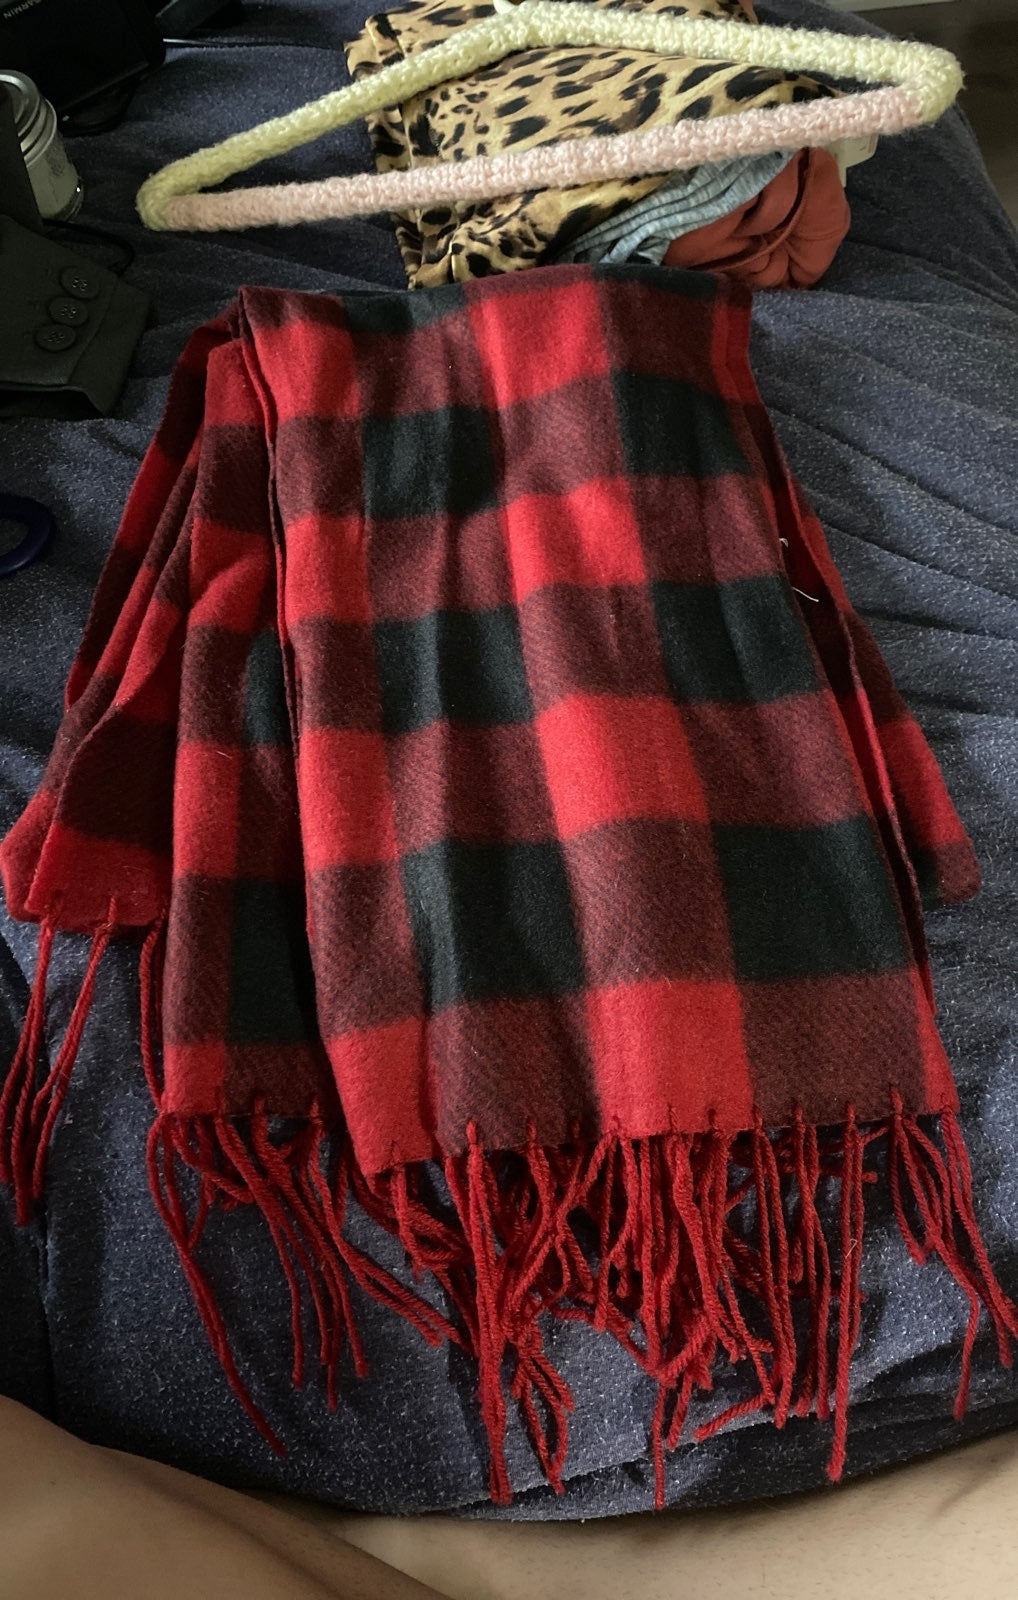 2 red scarves